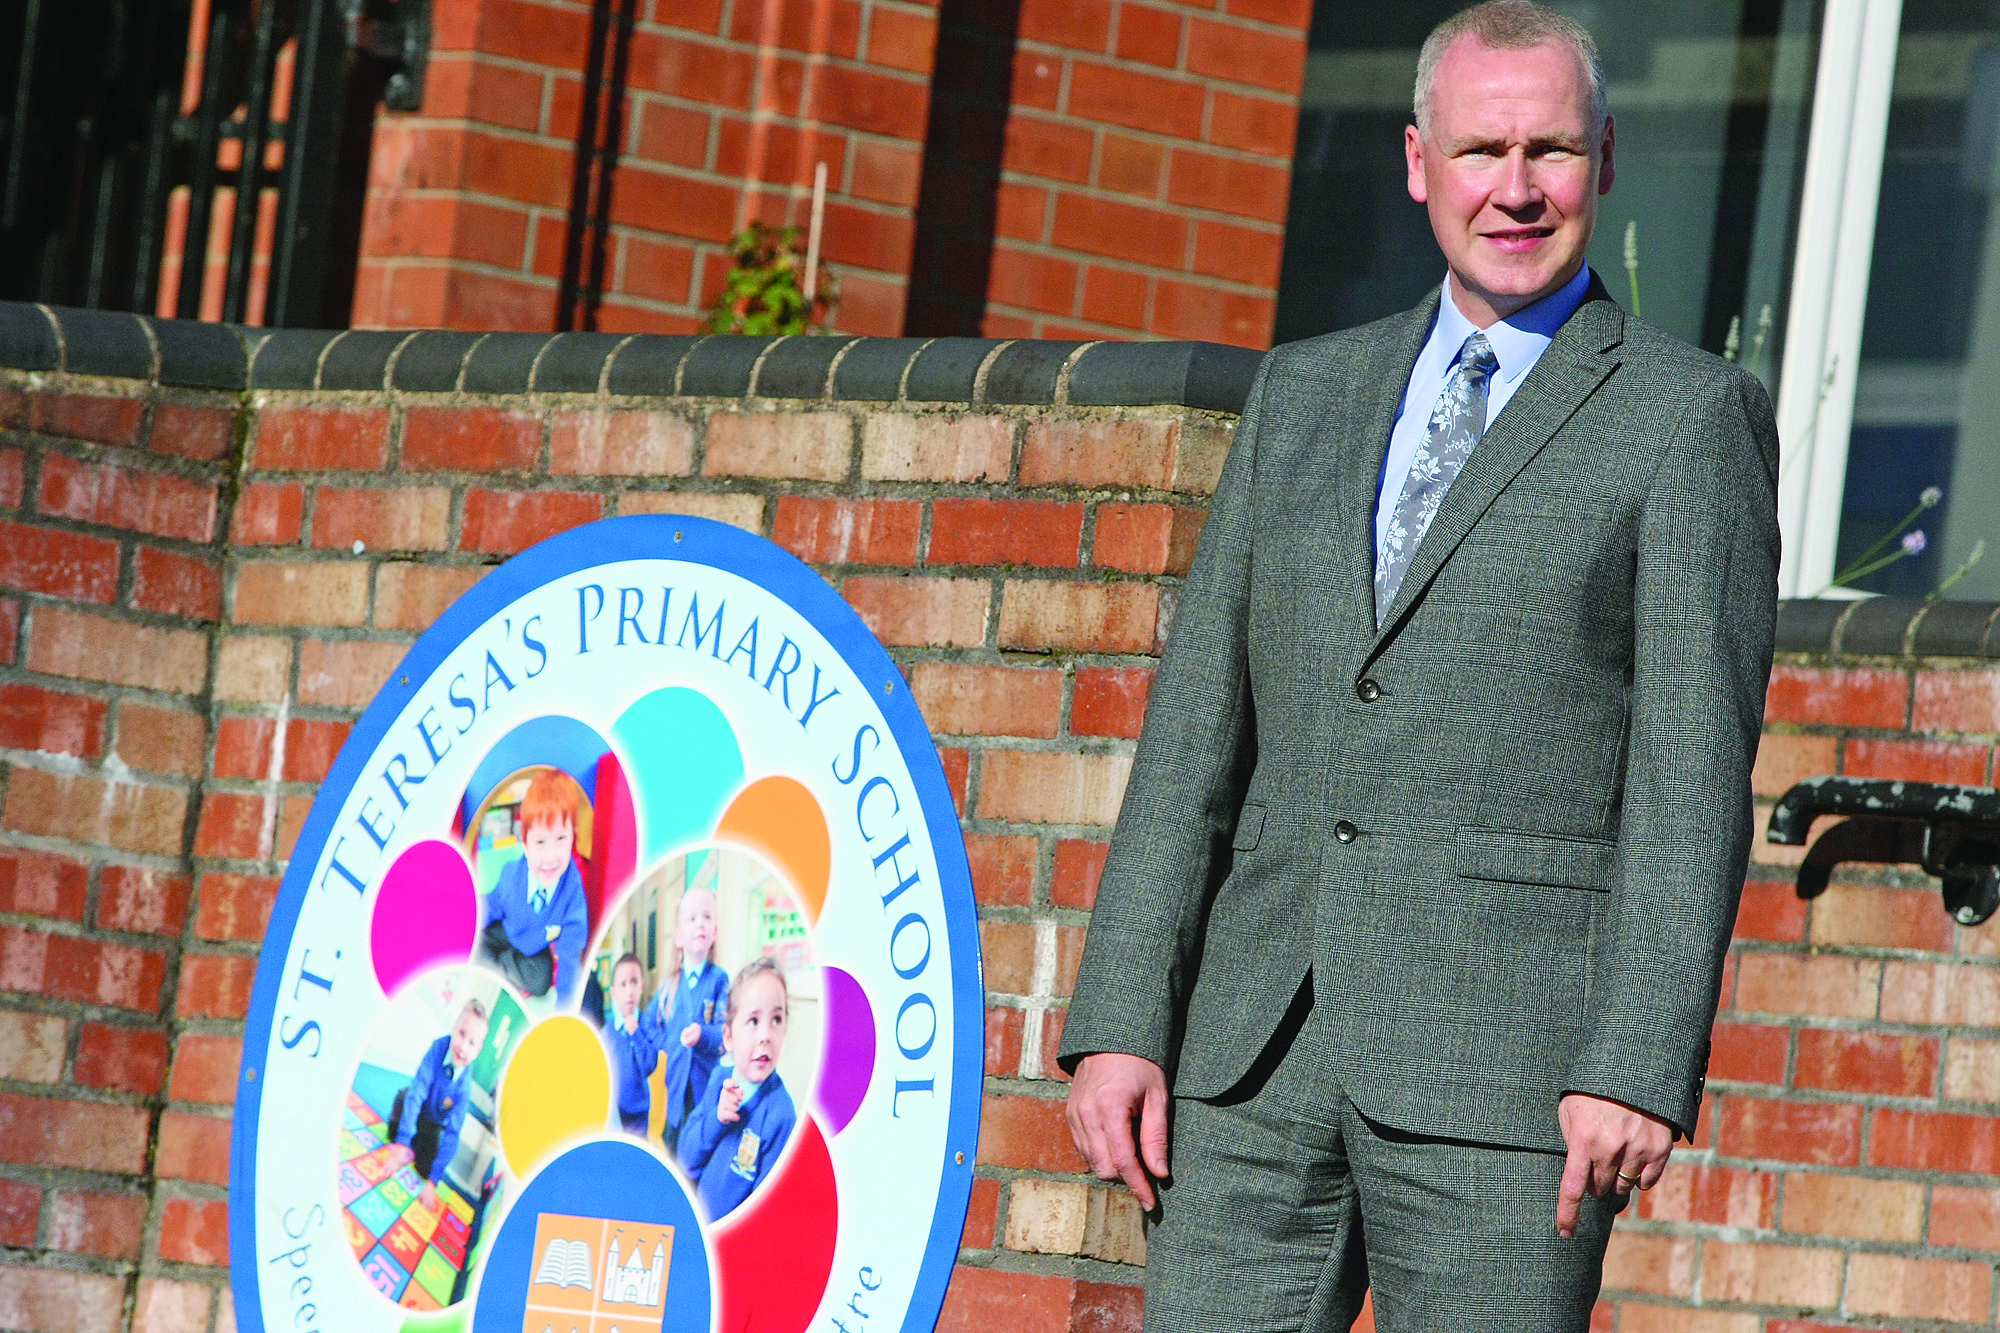 CONTRIBUTION: St Teresa's Primary School Principal Terry Rodgers suggests abandoning selection